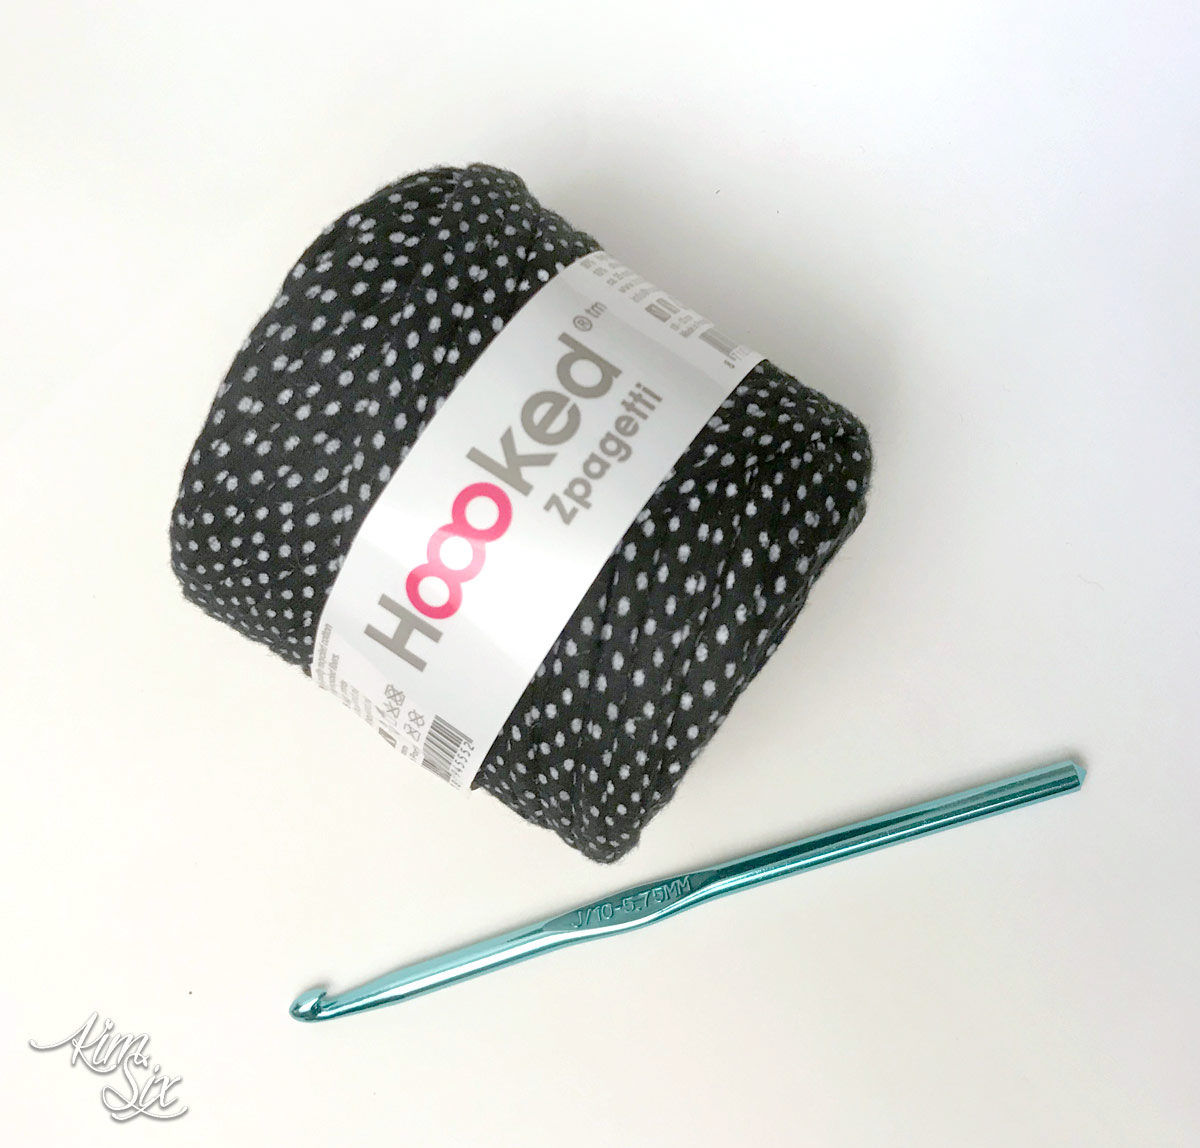 Crocheting with Hoooked zpagetti yarn